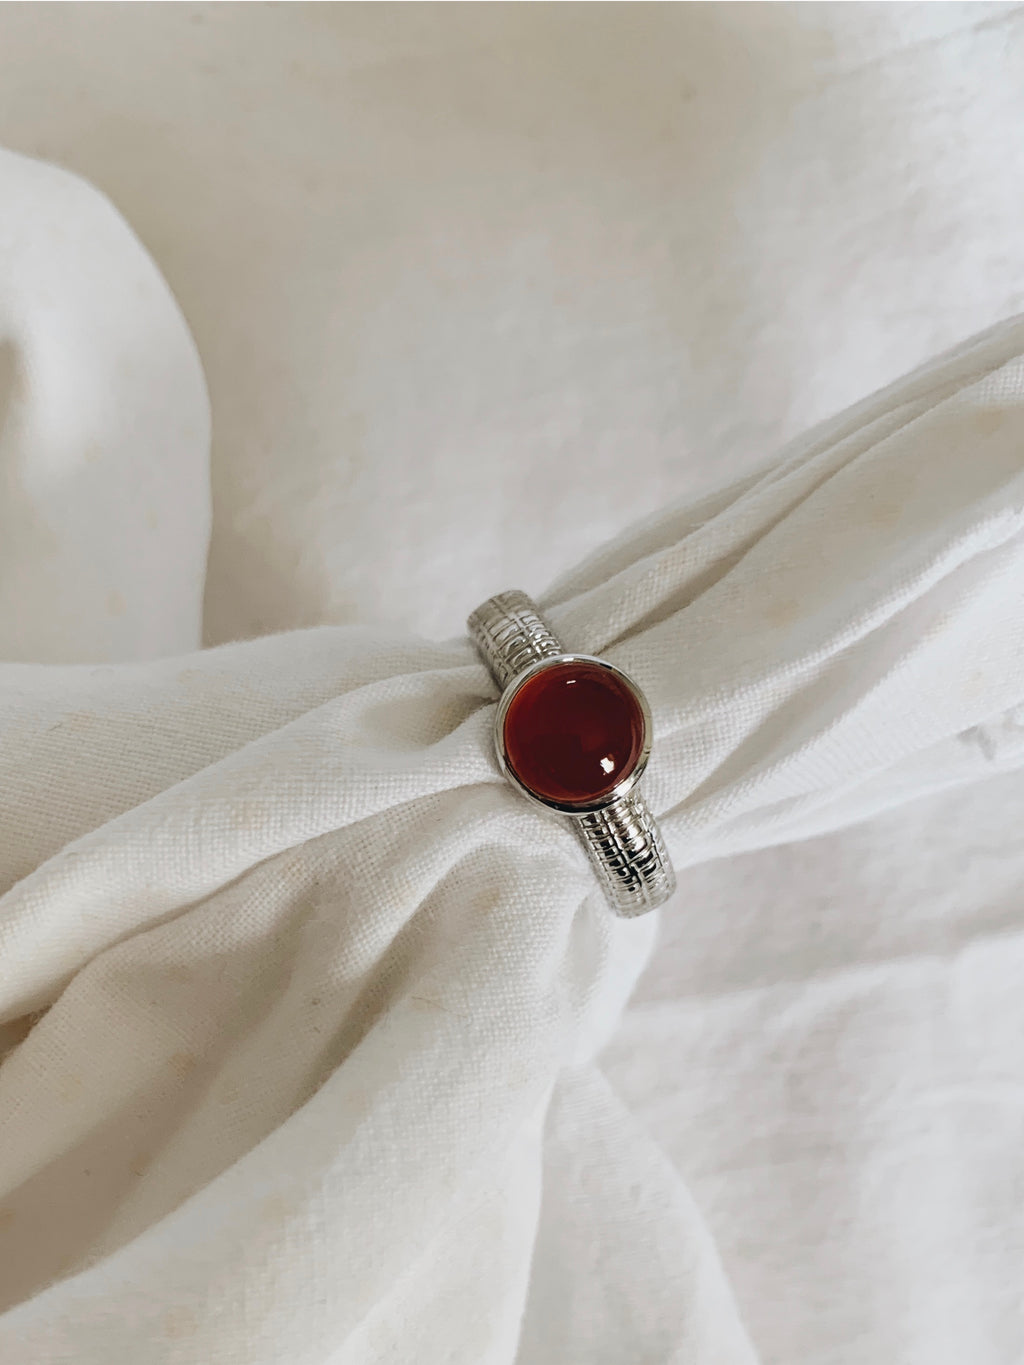 Sterling silver ring with red agate gemstone by Roze Amélie